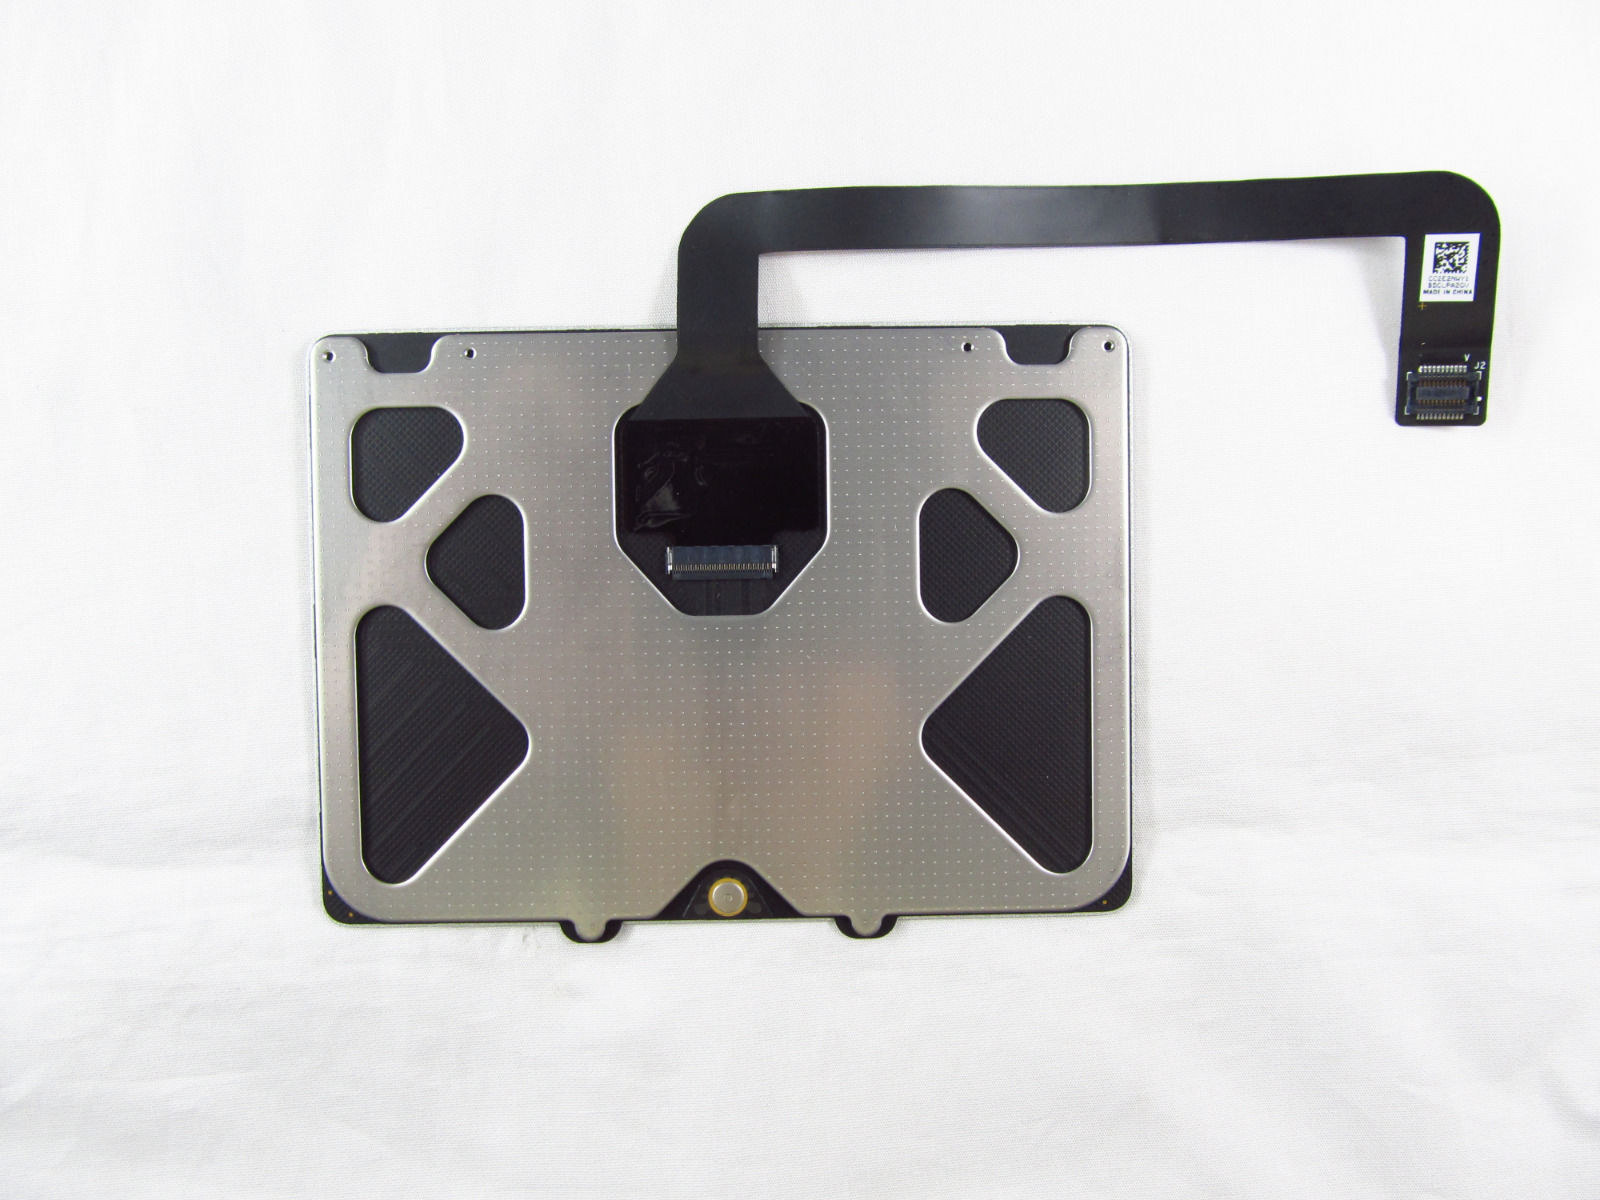 CHUOT CAM UNG trackpad touchpad for Macbook Pro A1286 Unibody 2009 2010 2011 2012